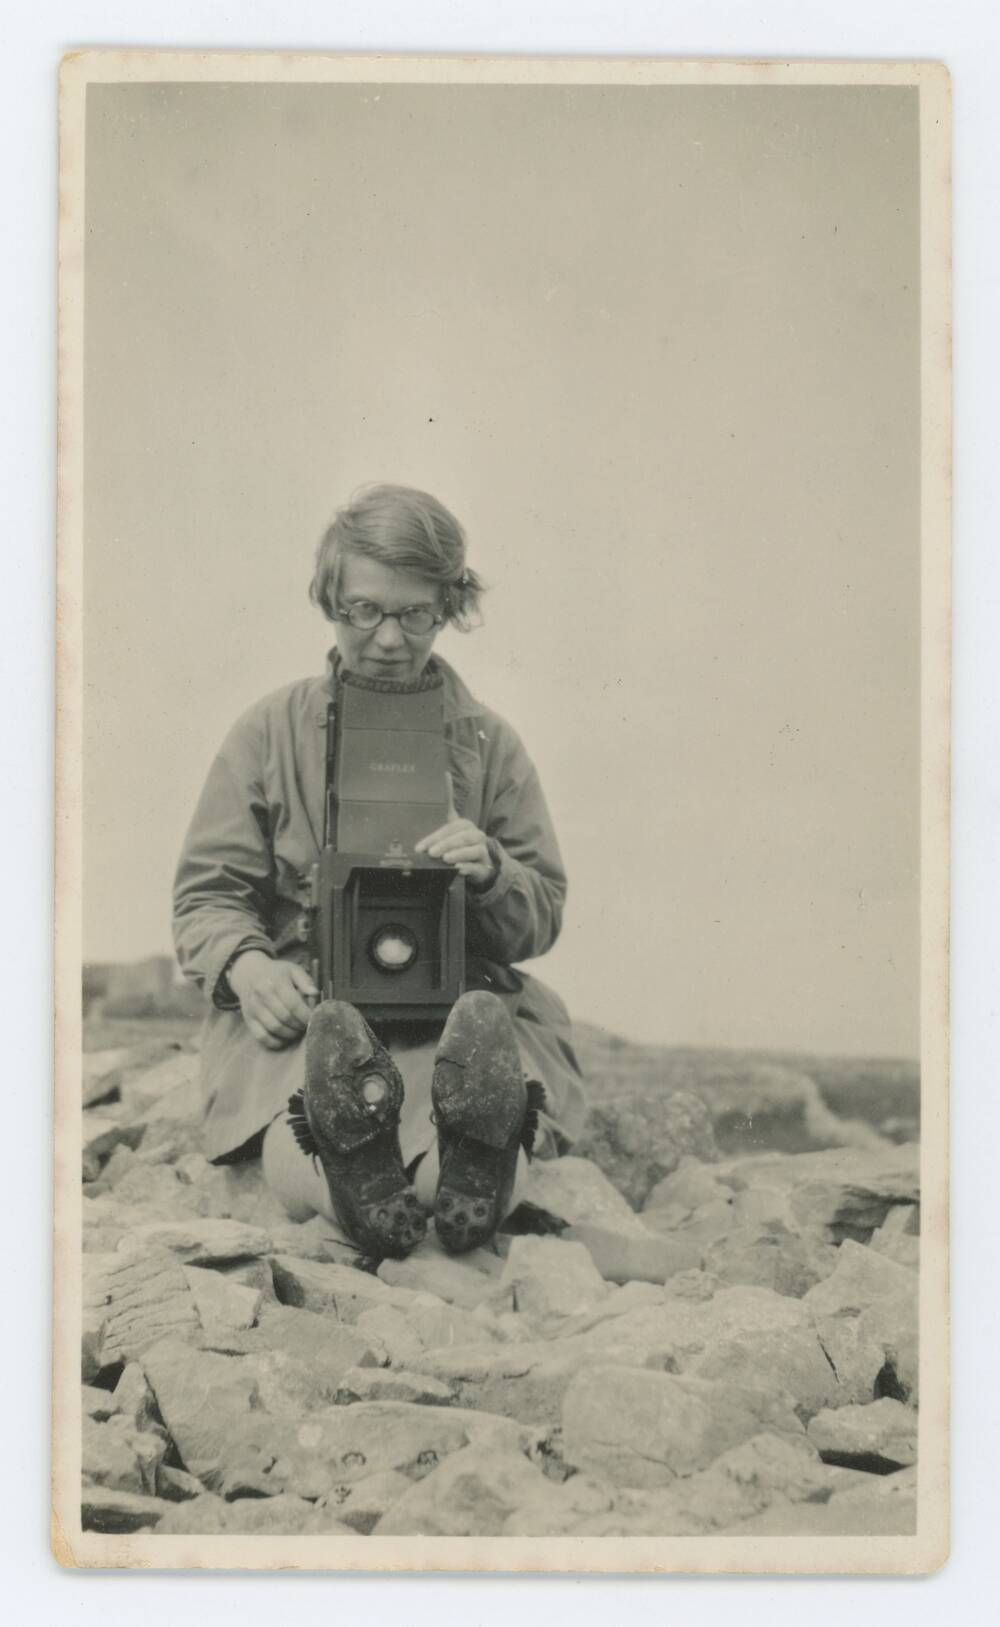 A sepia photo of a woman sitting on rocky ground. She holds a large camera and the soles of her boots face the viewer.